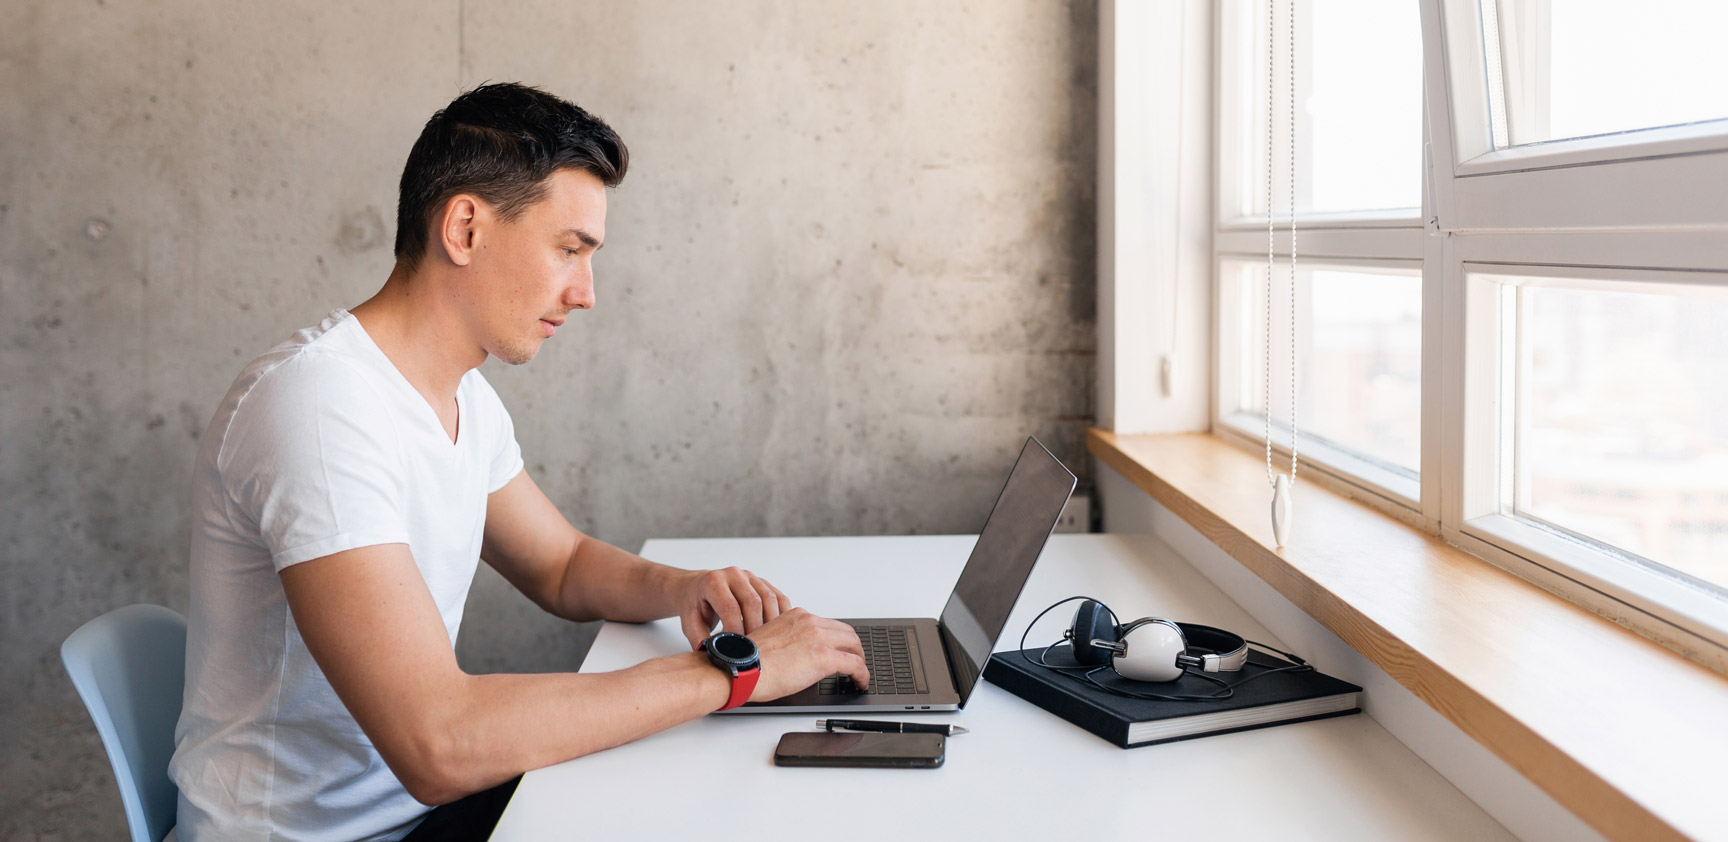 young handsome smiling man casual outfil sitting on a table working with a laptop